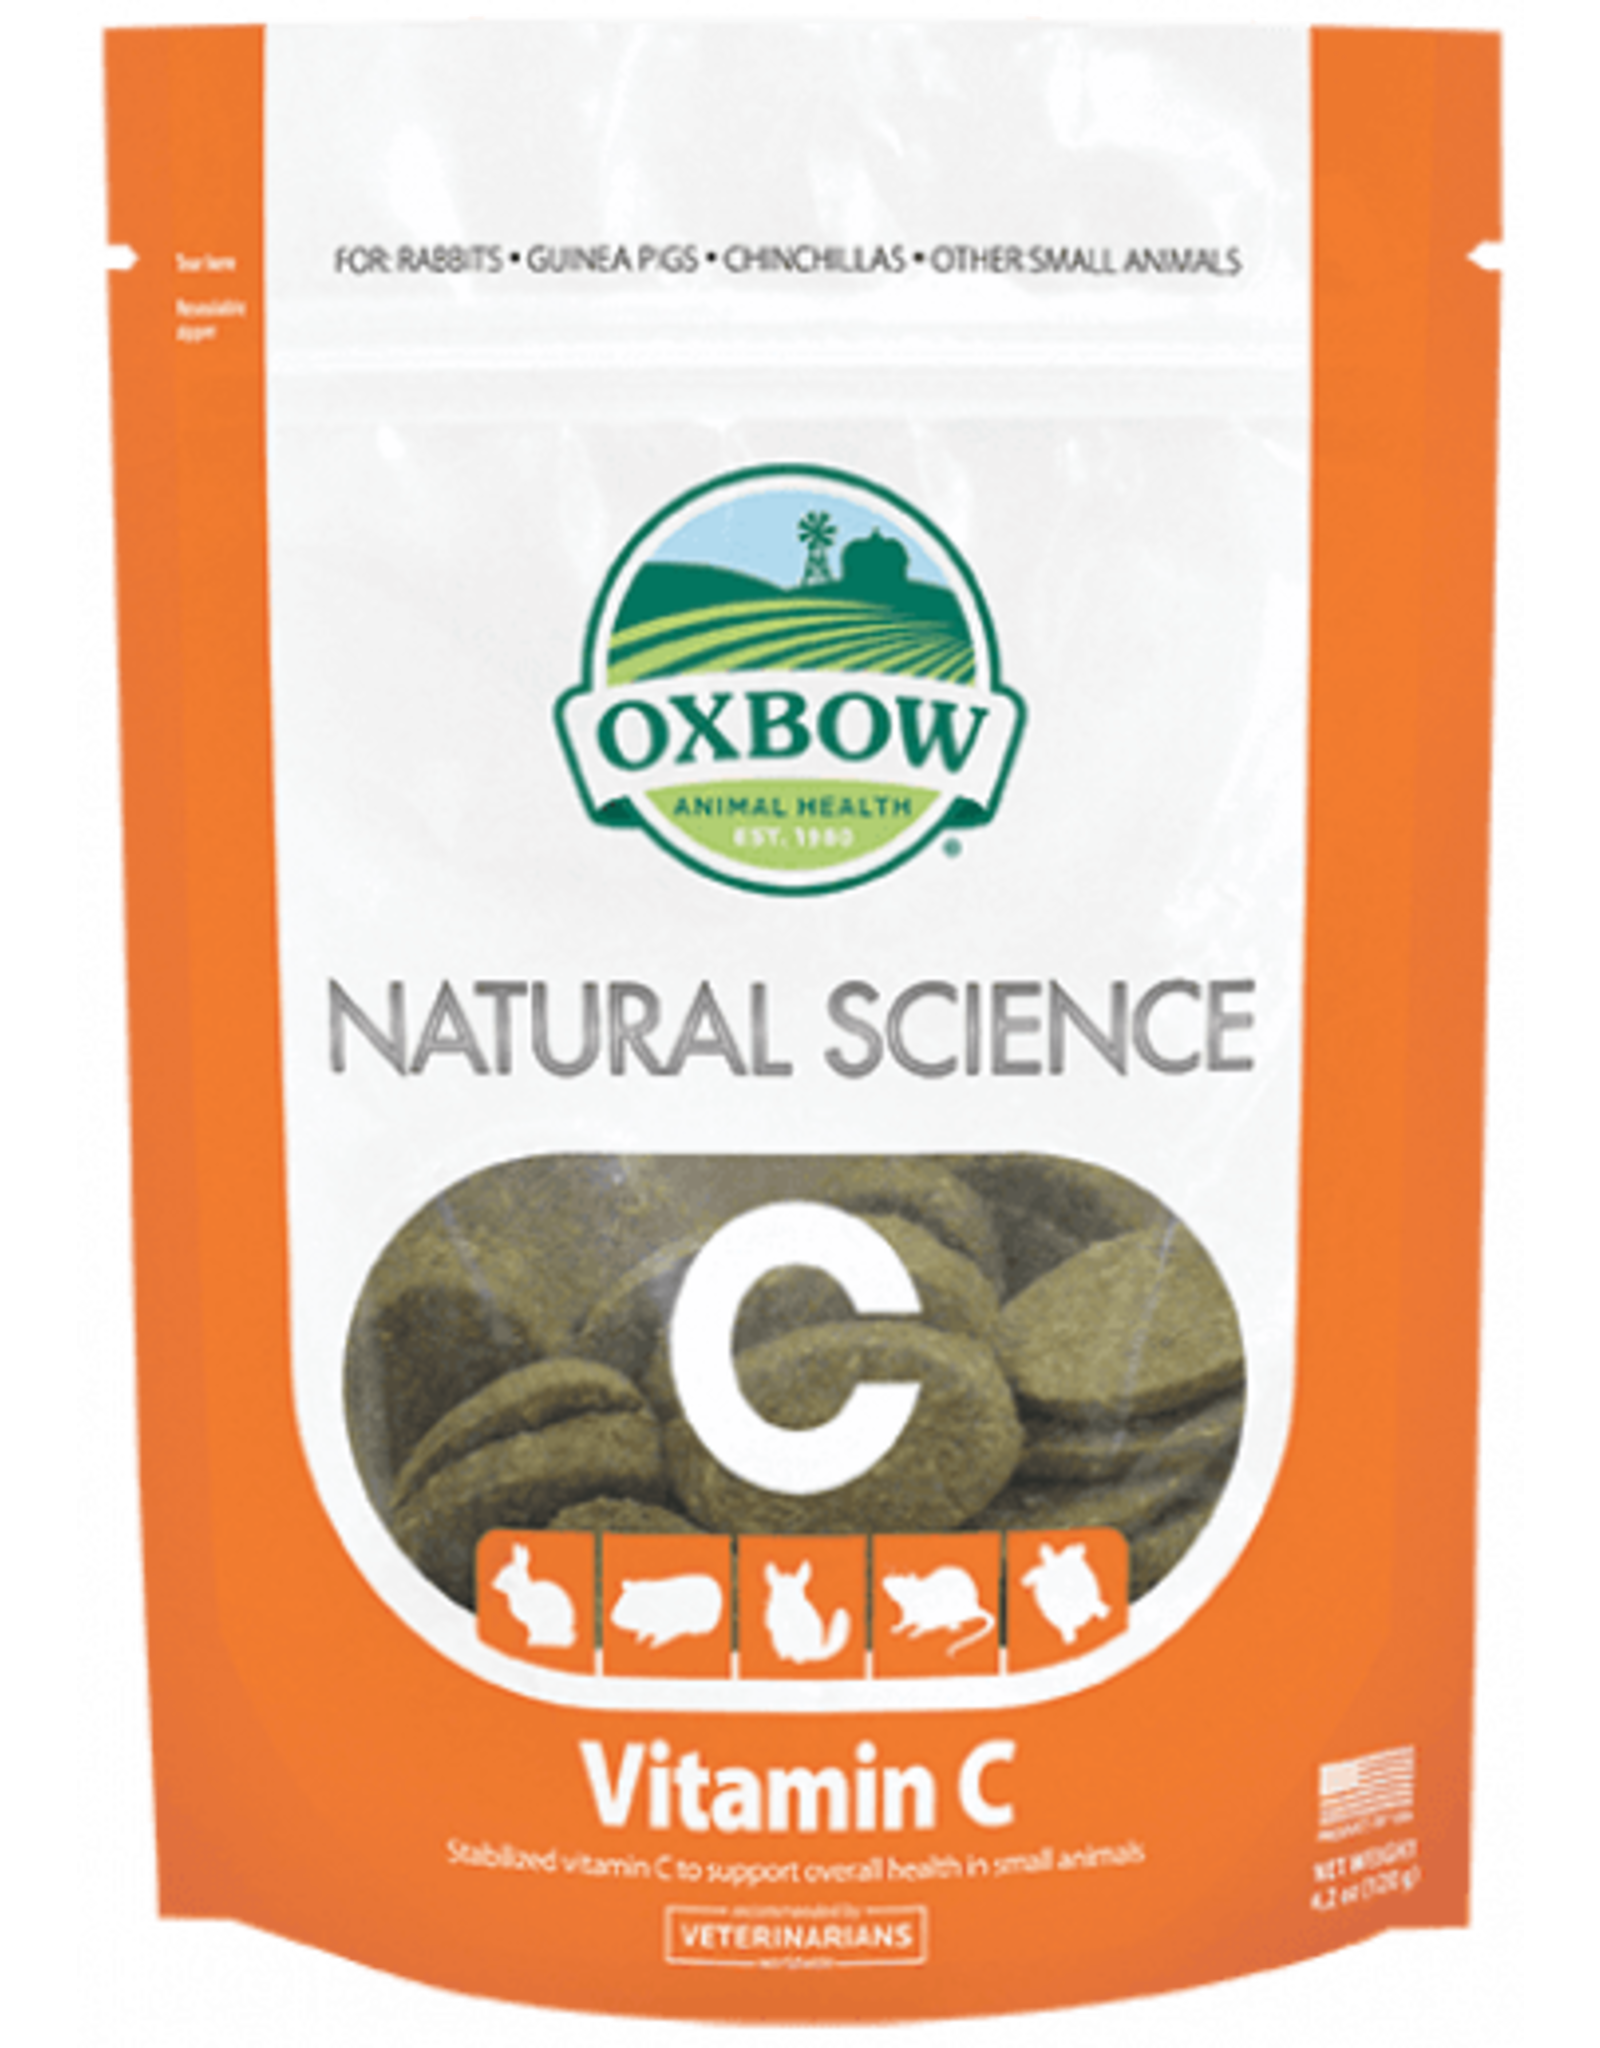 Oxbow OXBOW \ Natural Science \ Vitamin C Supplement 60ct